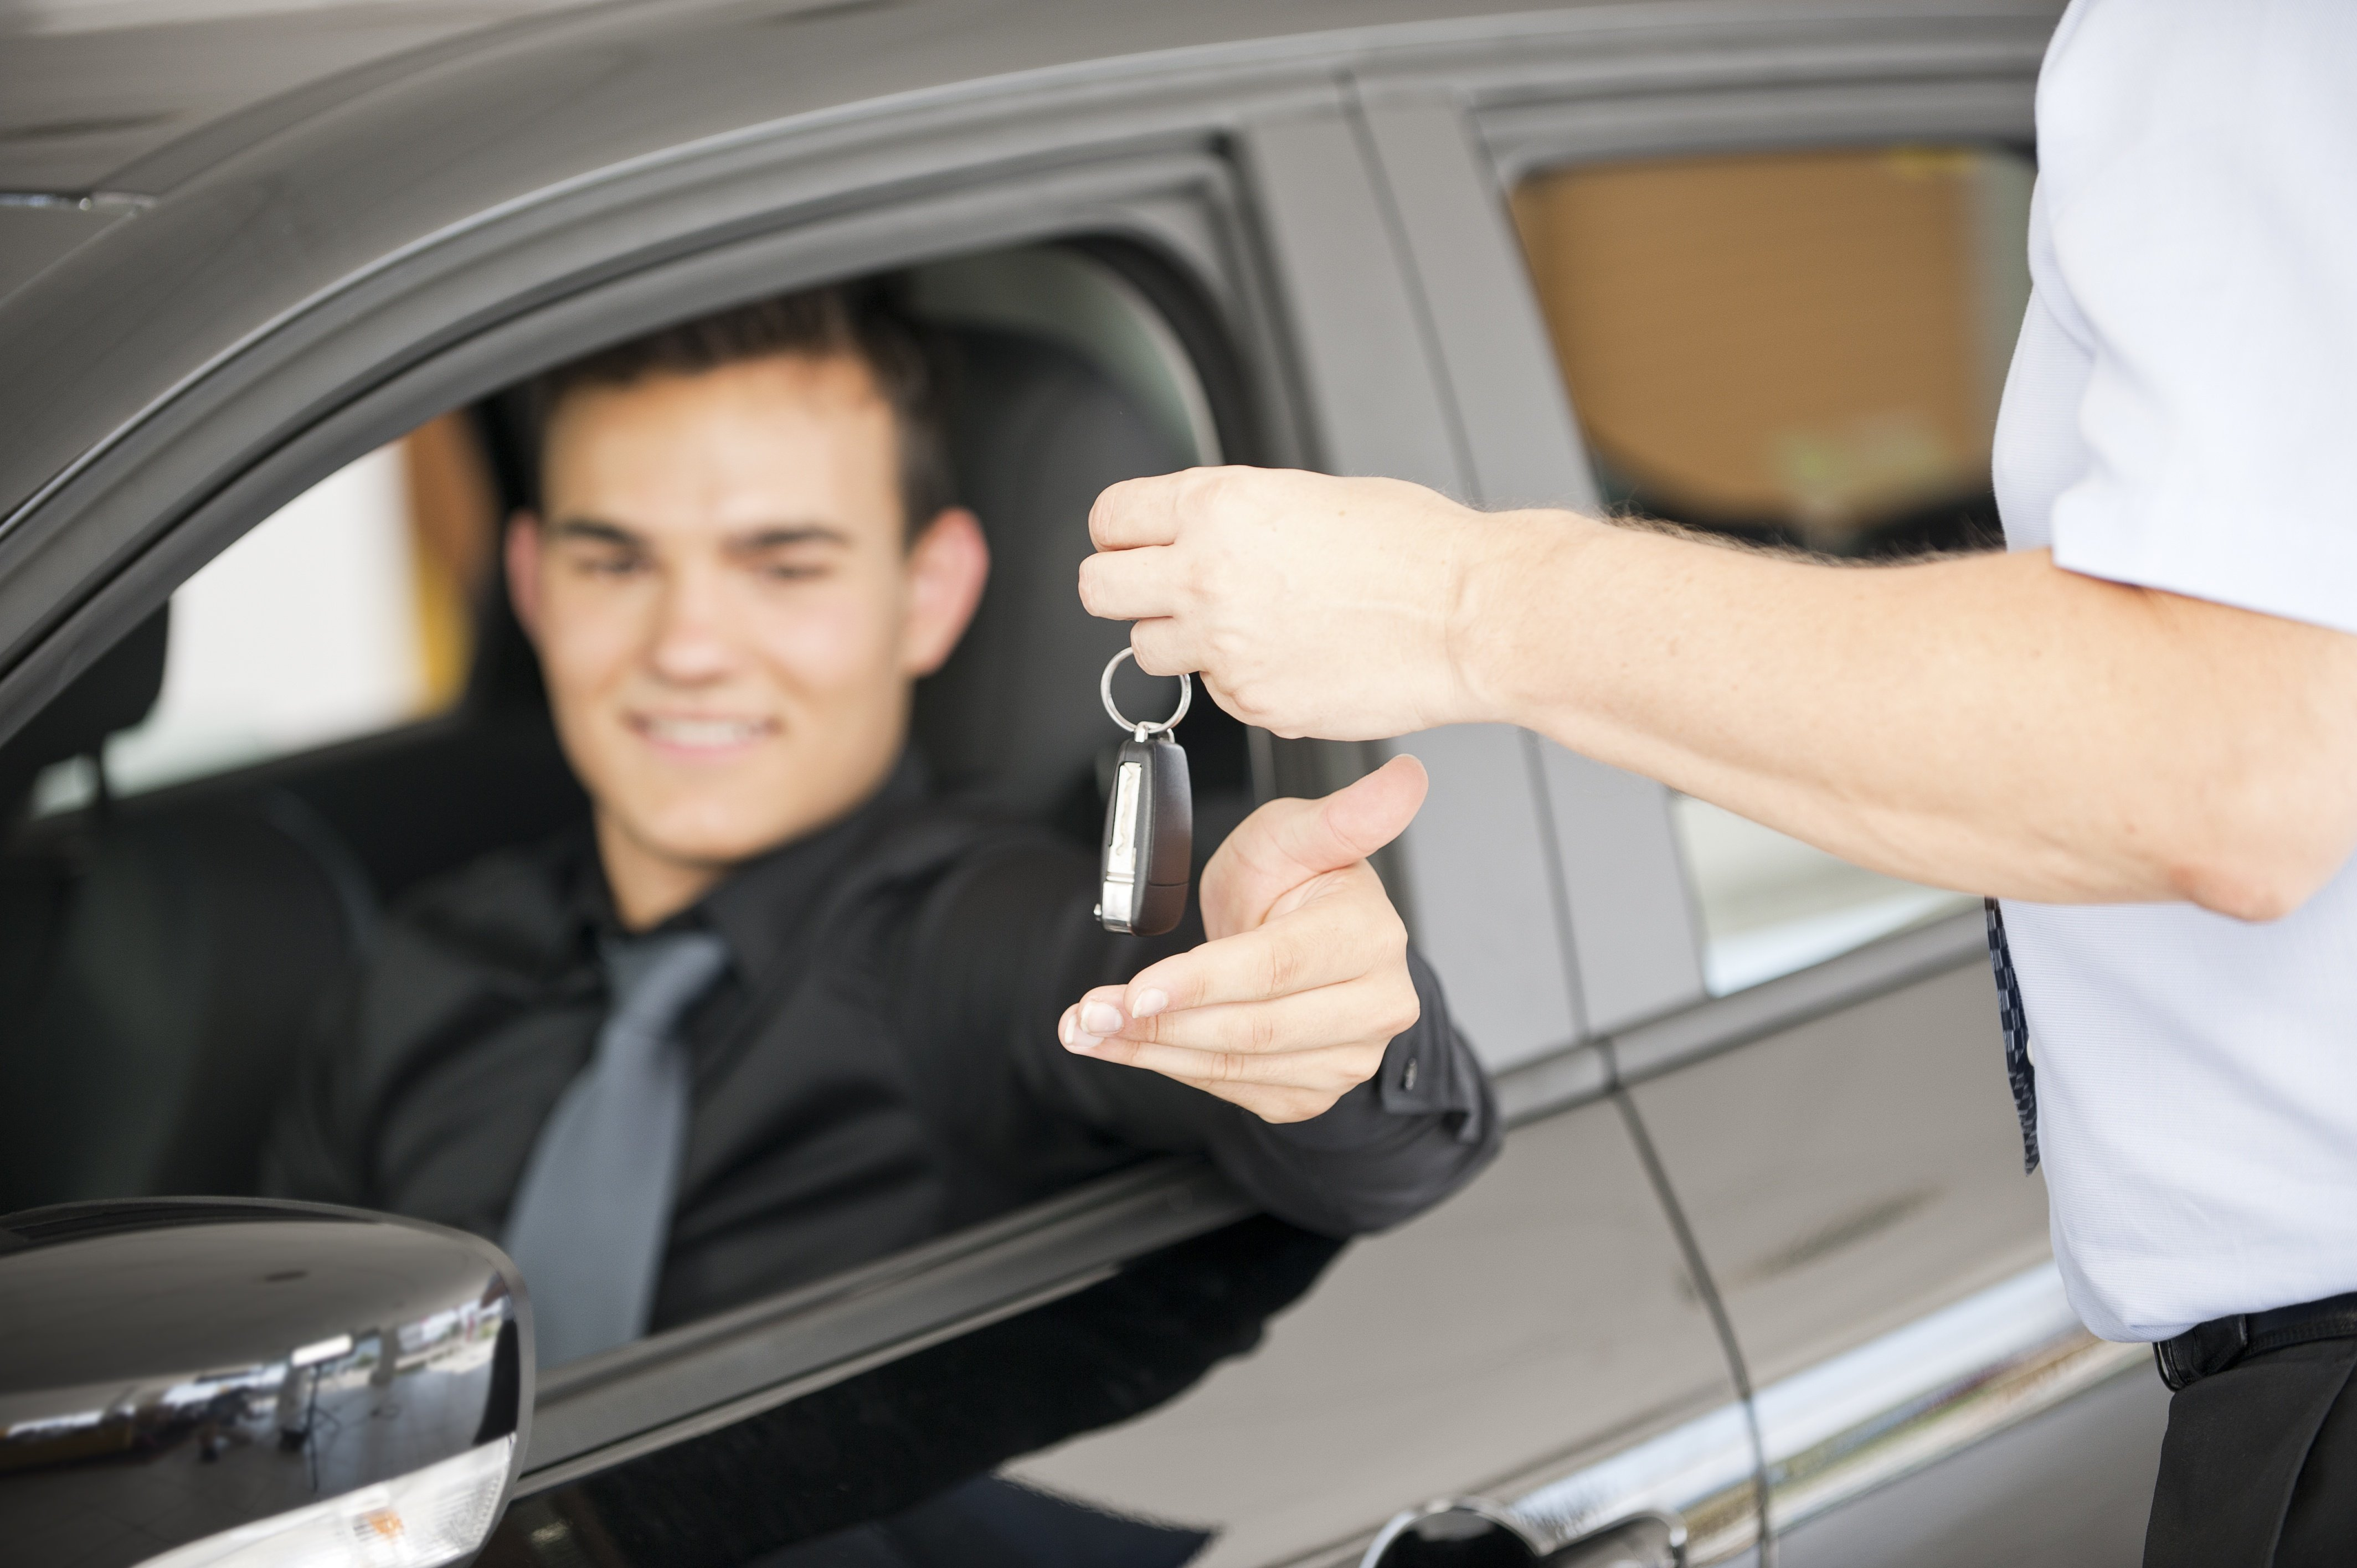 man getting keys to car